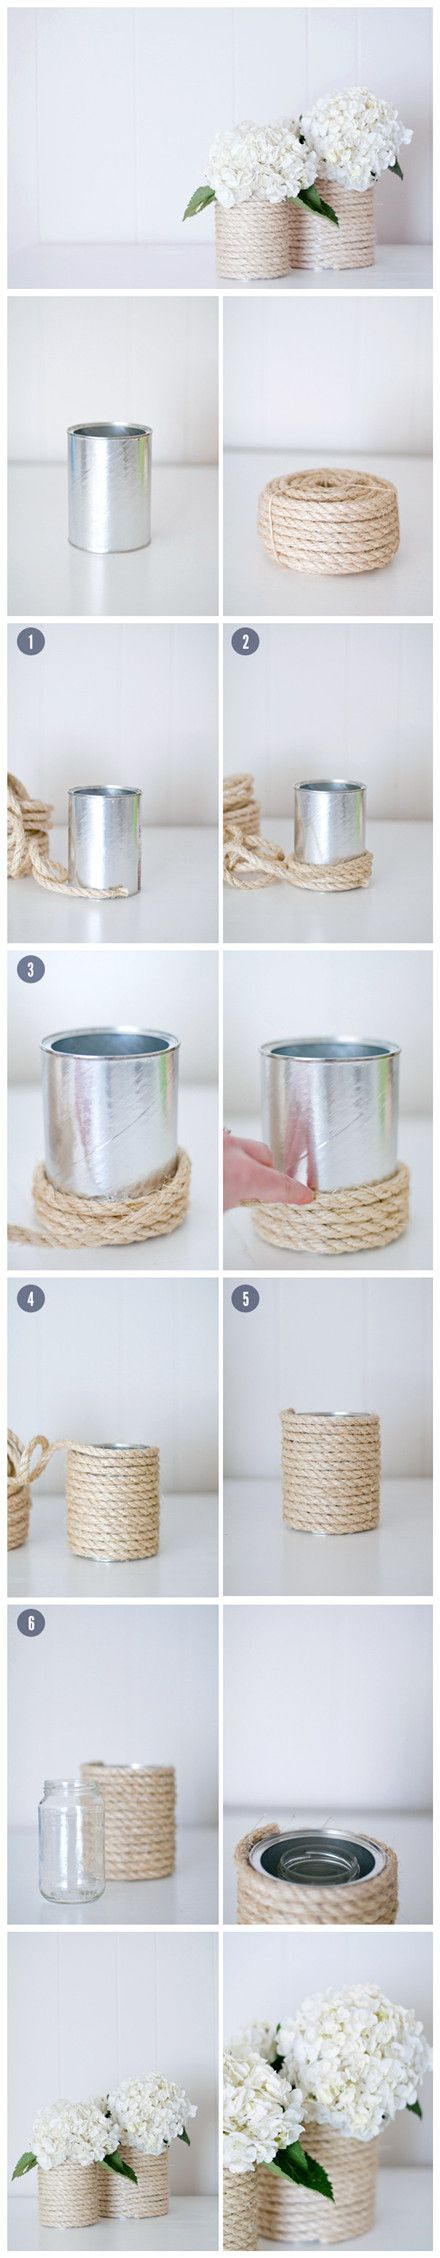 DIY Center Pieces...maybe some nice looking table toppers for blue and gold. change the color of the rope being used?